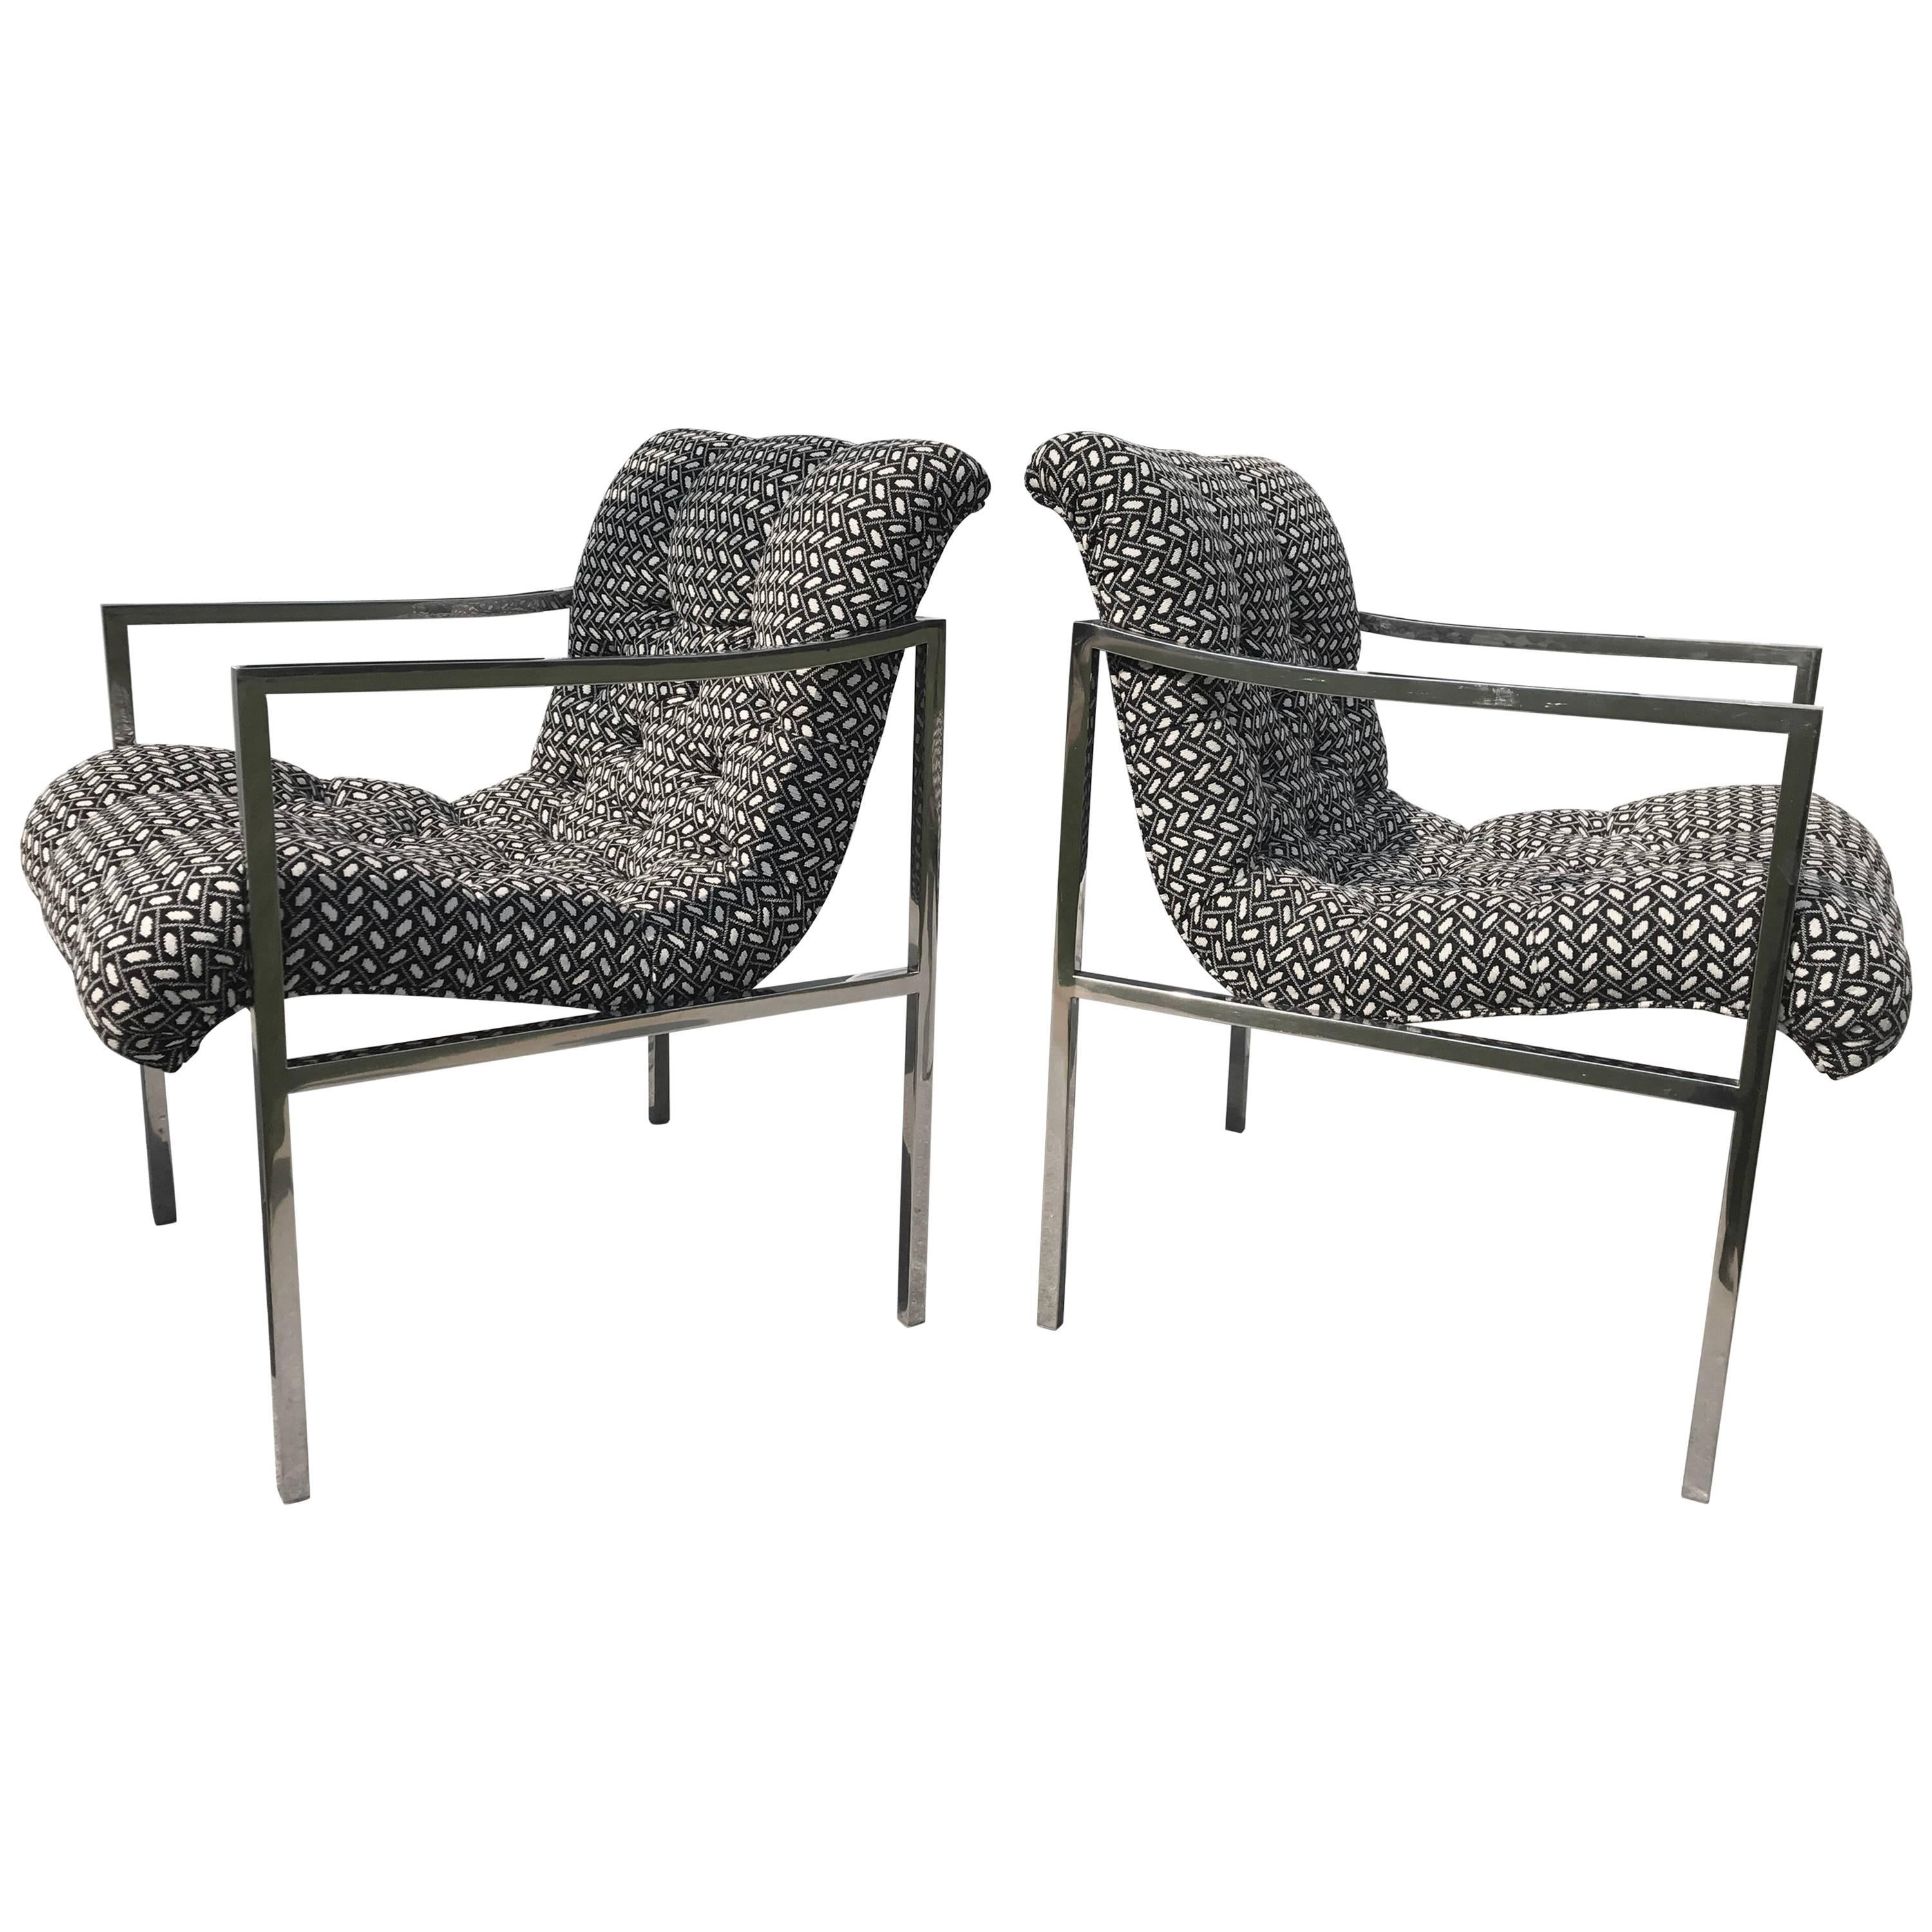 Milo Baughman Scoop Lounge Chairs 1